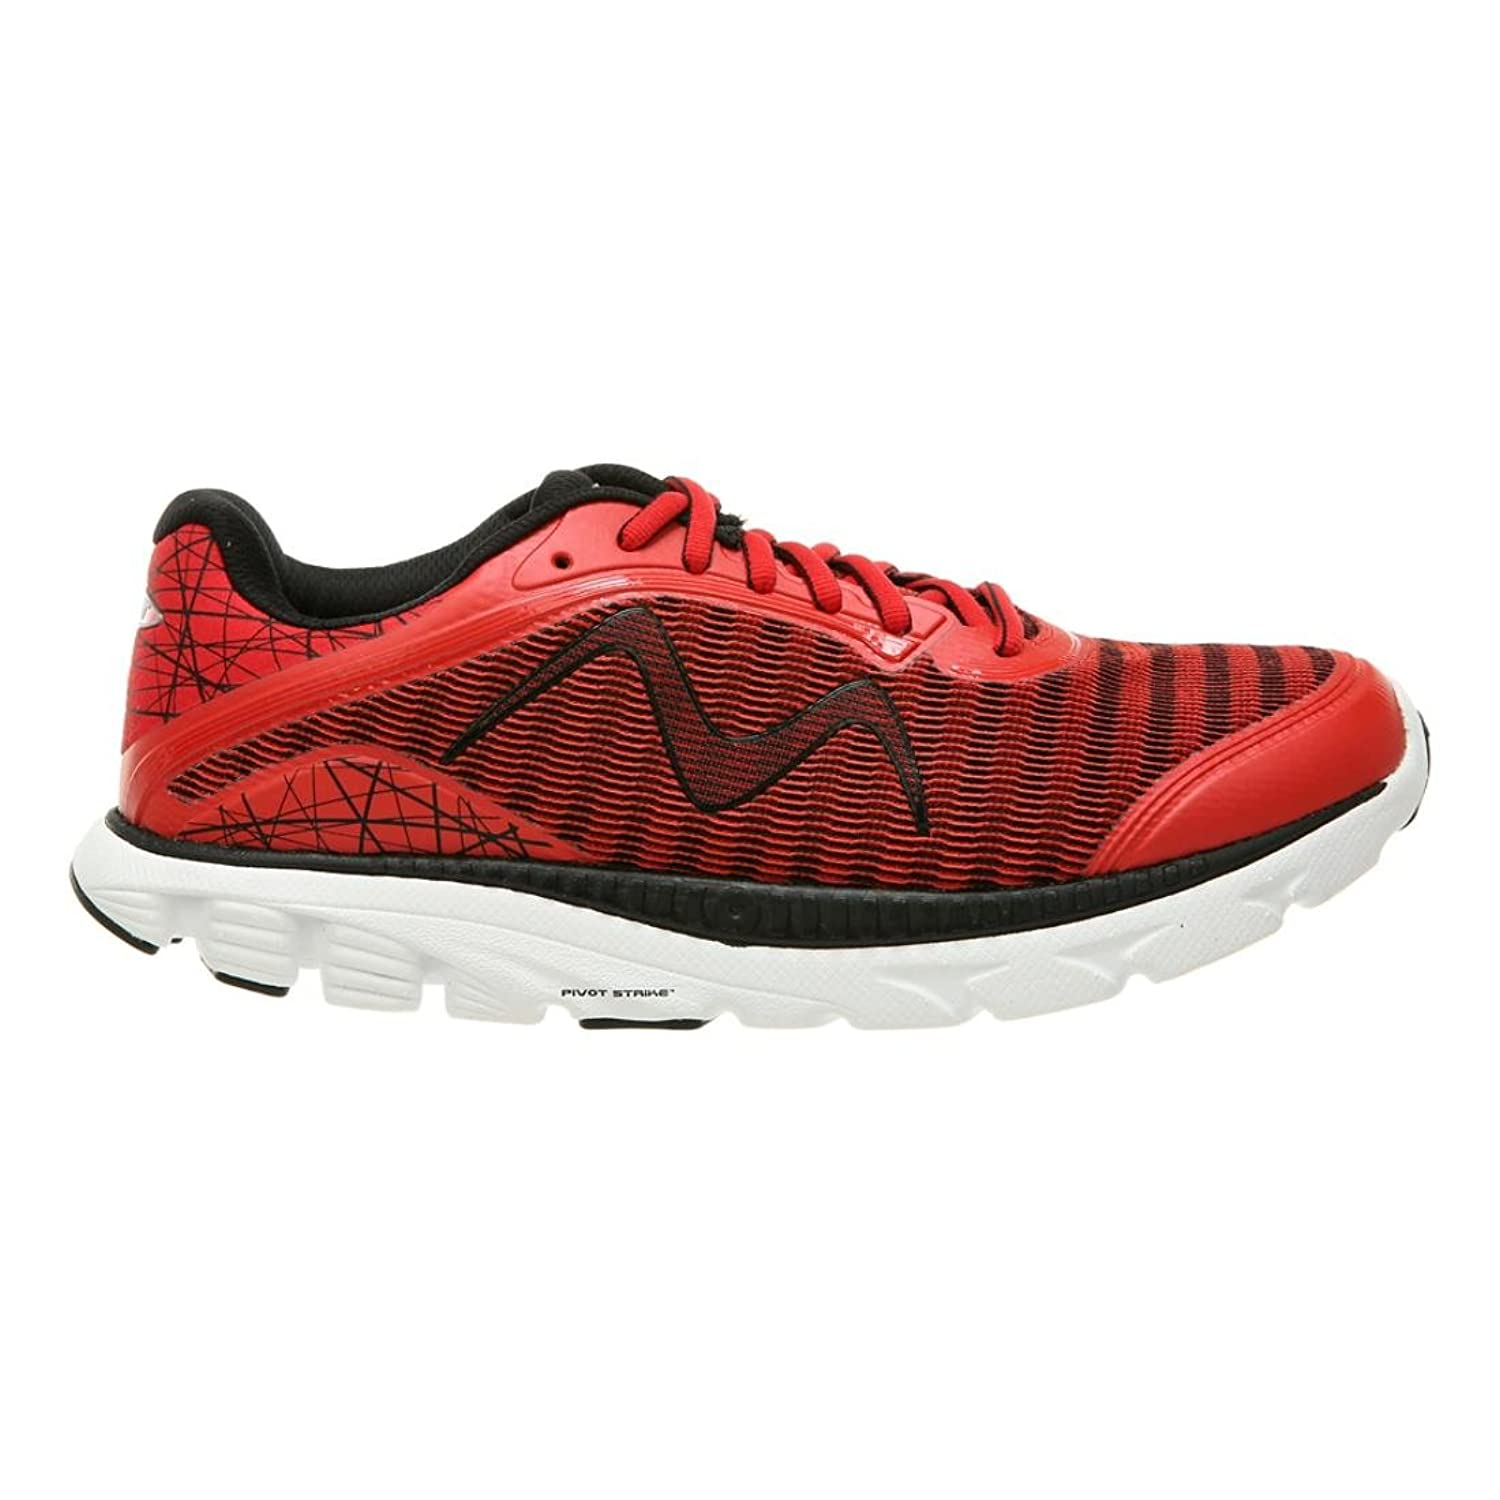 ZAPATILLA MBT 702007-06Y RACER 18 RED B0741SN2Q9  Red/Mesh 13 D(M) US